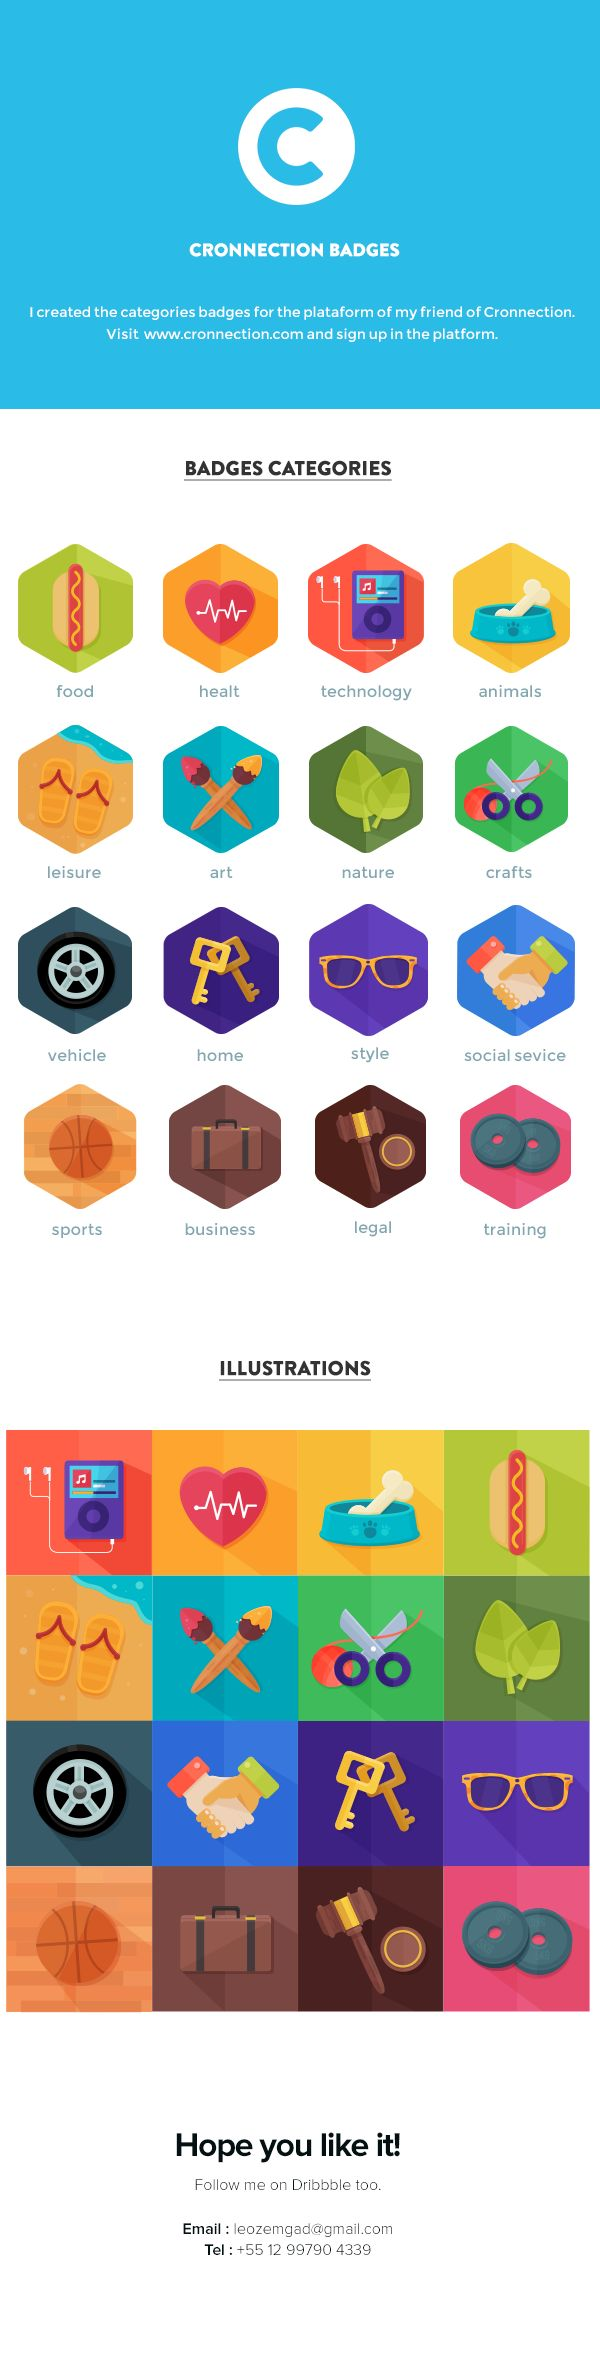 Cronnection badges by Leonardo Zem, via Behance